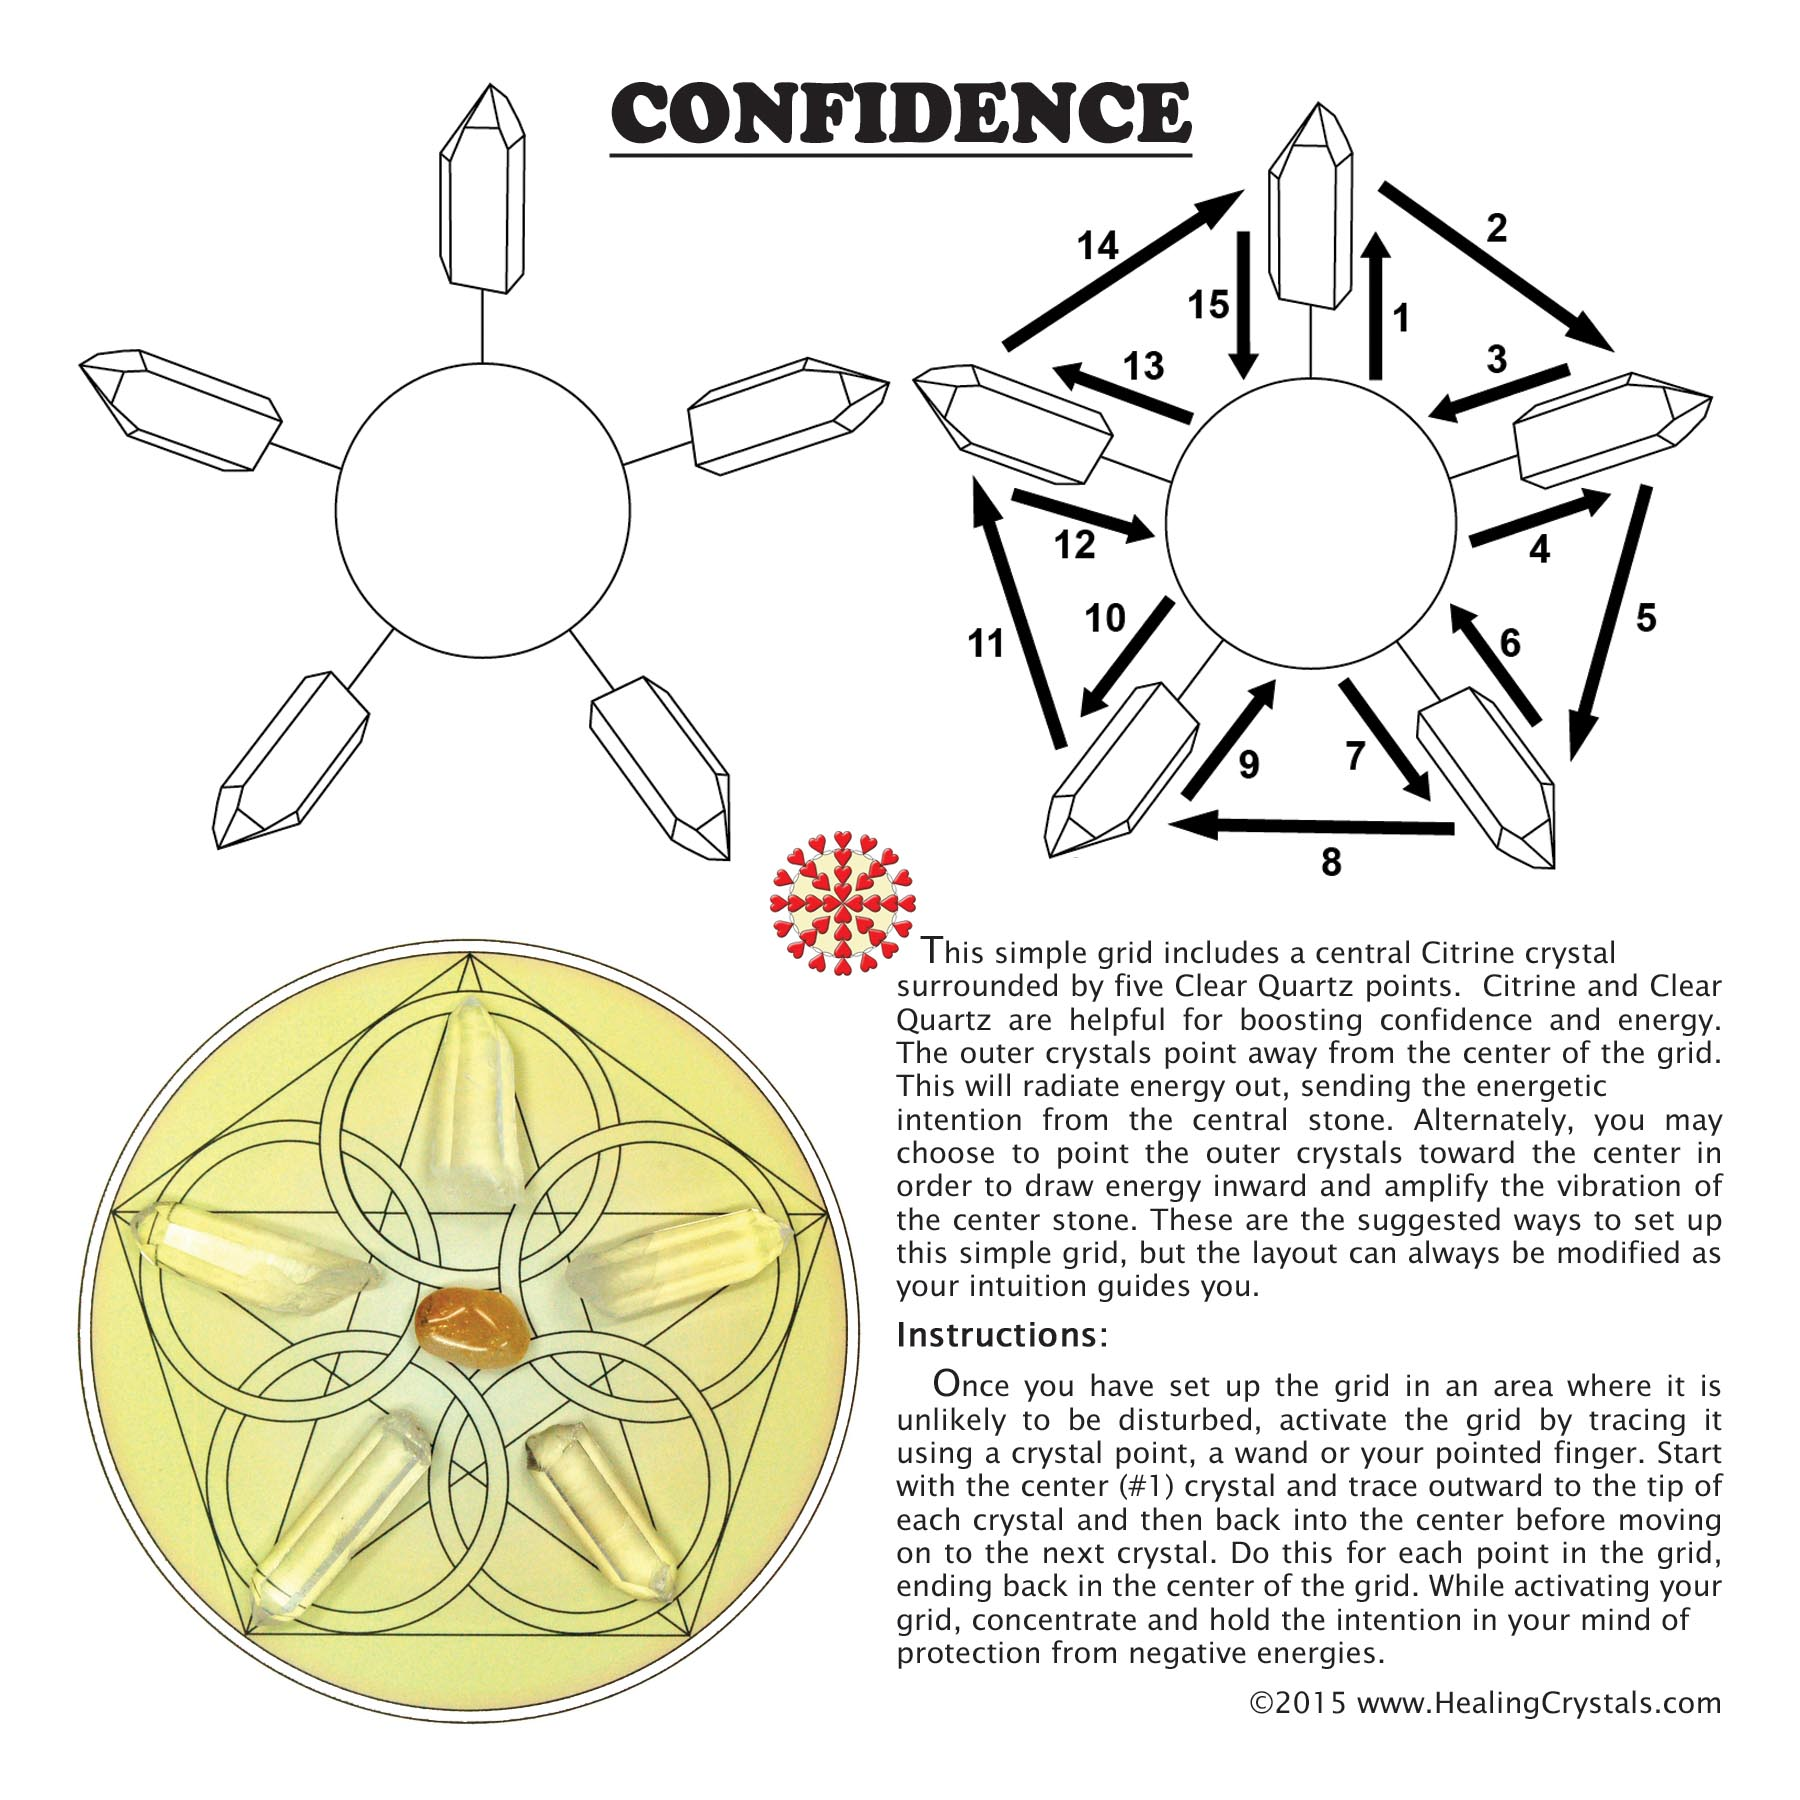 Crystal Grid Kit for Confidence